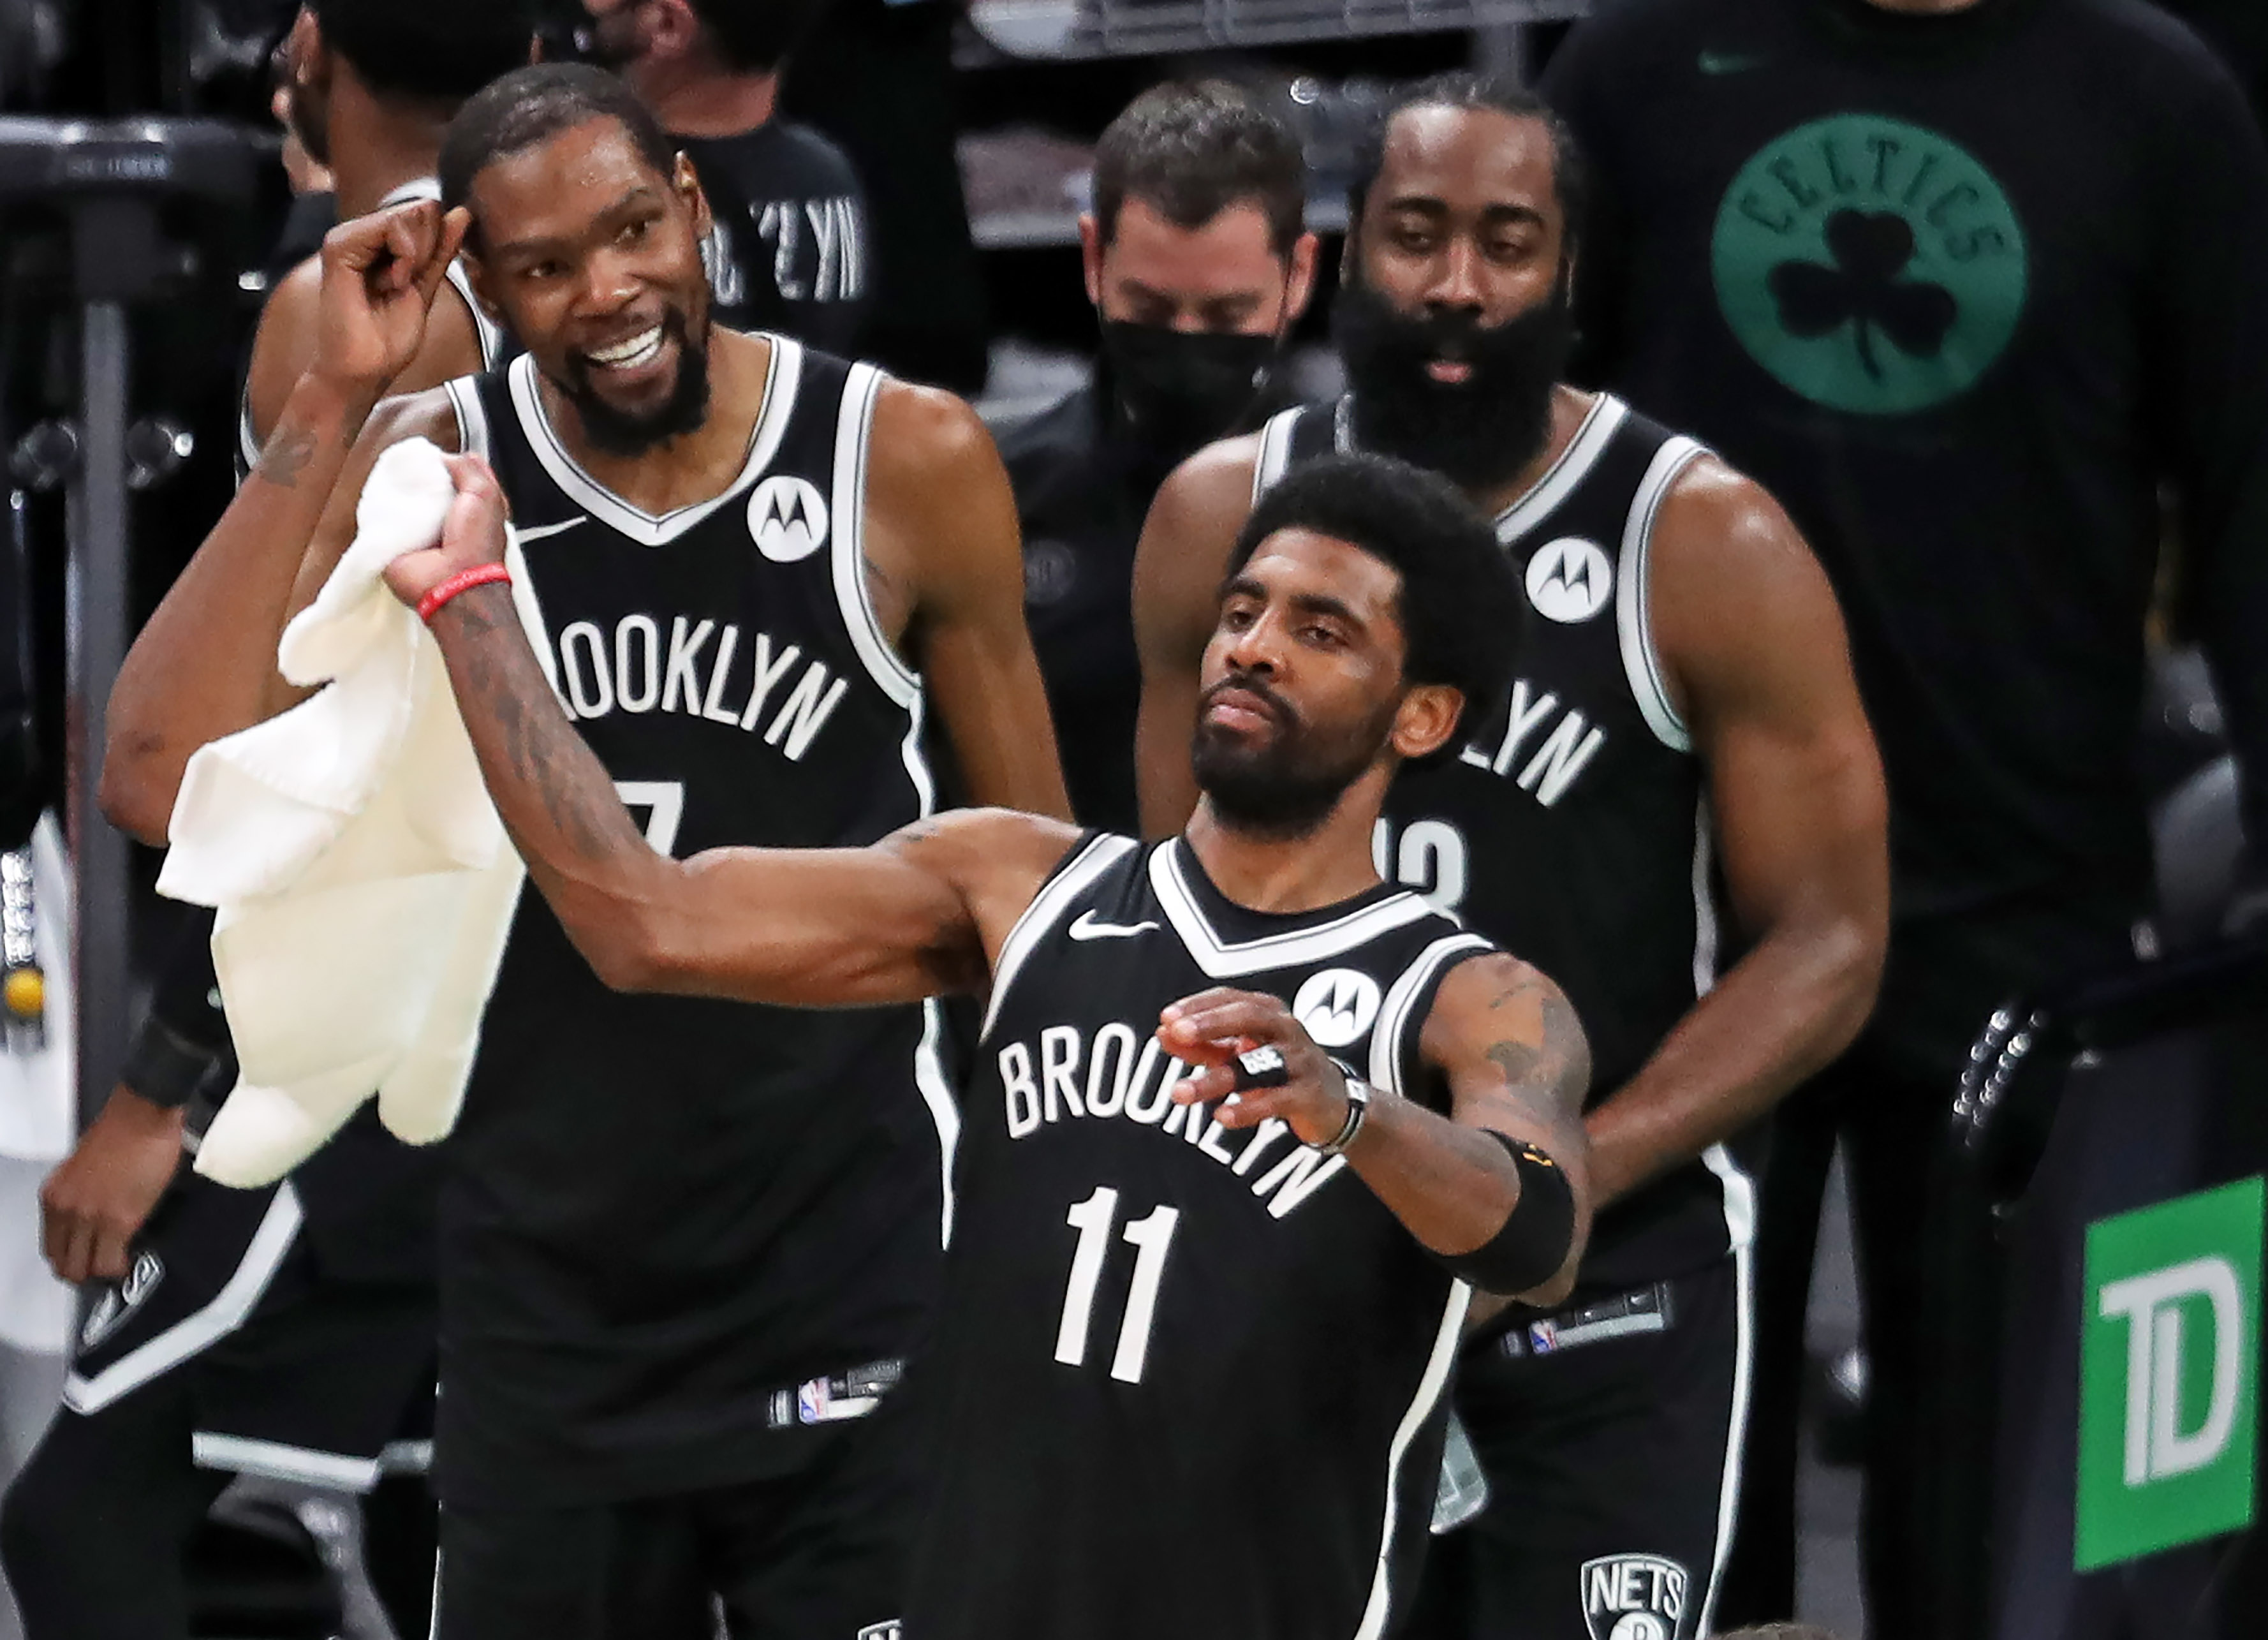 The Nets Kyrie Irving waves a towel in celebration as the final seconds ticked off the clock, his teammates Kevin Durant and James Harden are behind him. The Boston Celtics host the Brooklyn Nets in Game Four of their first round NBA Playoff series at the TD Garden in Boston on May 30, 2021.